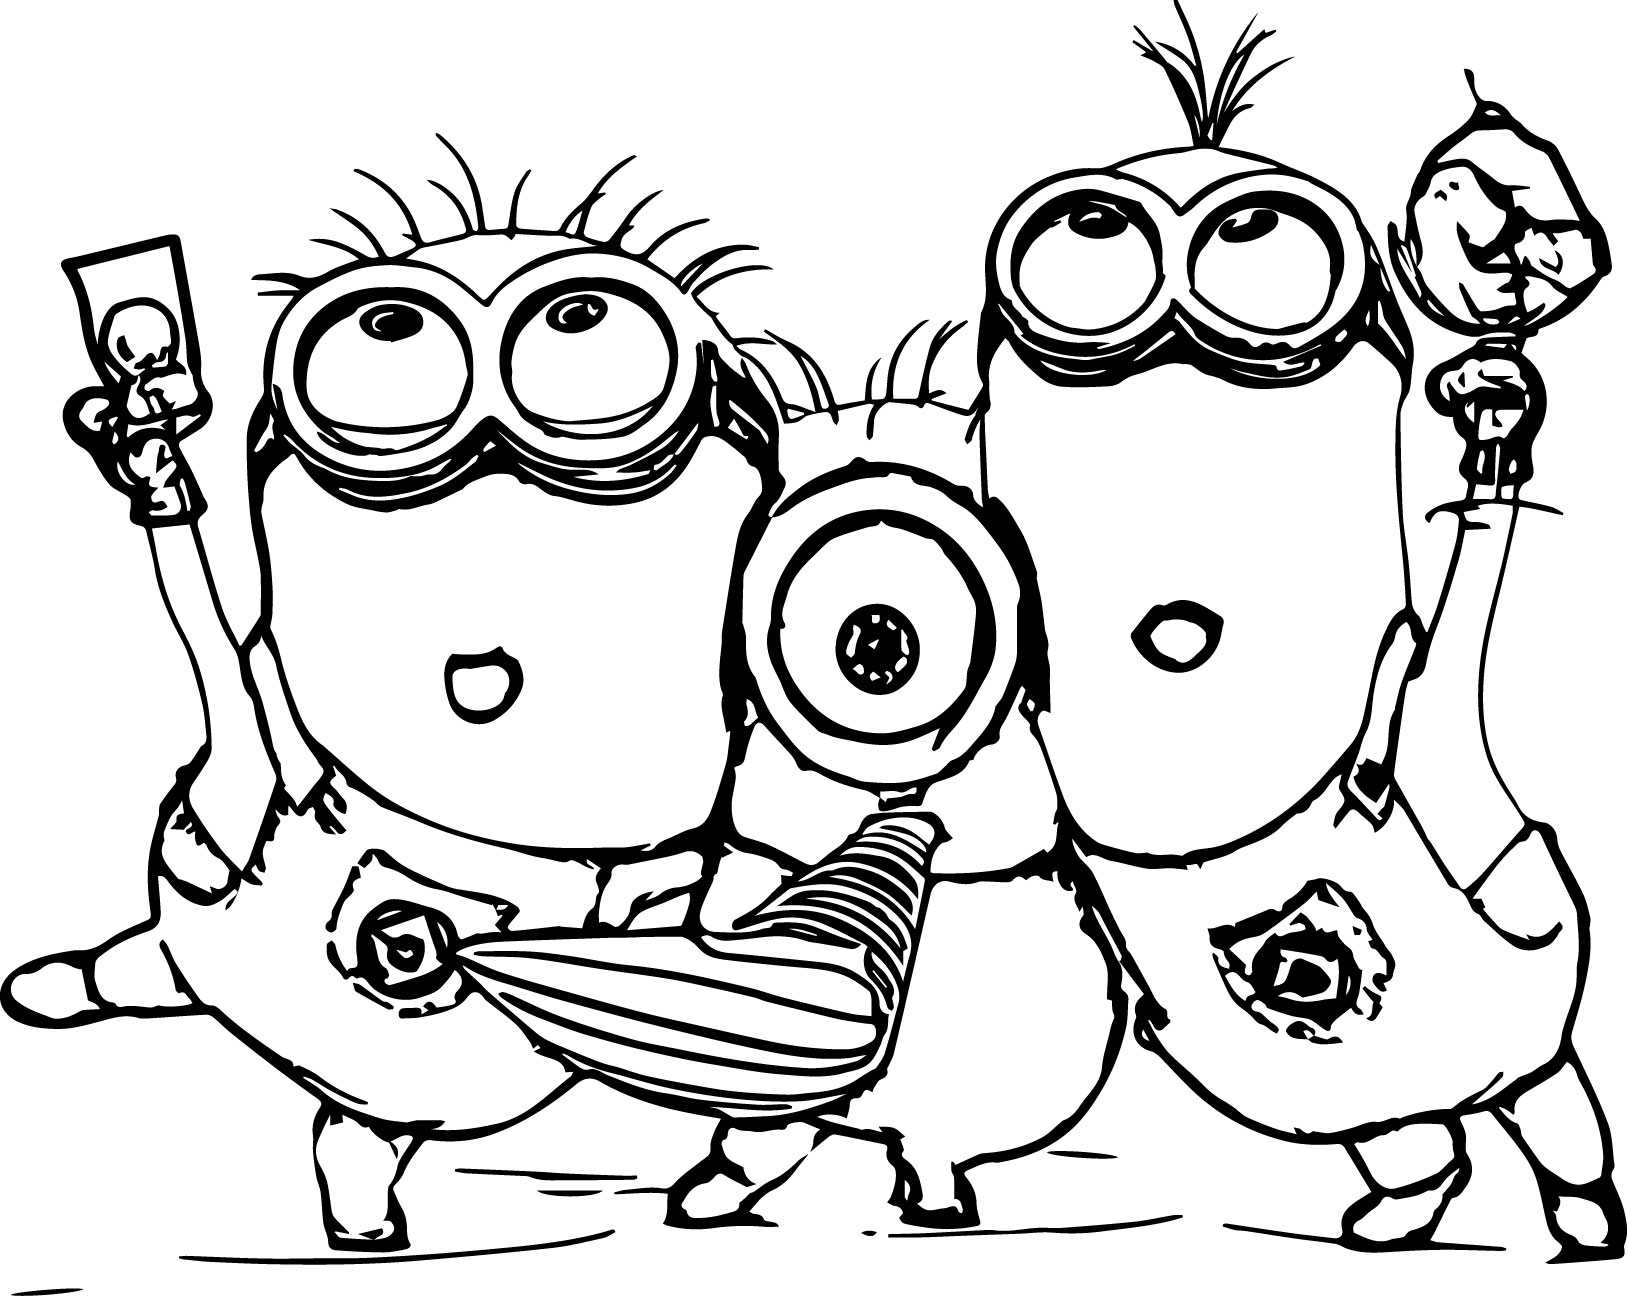 coloring pages minions angen - photo#32